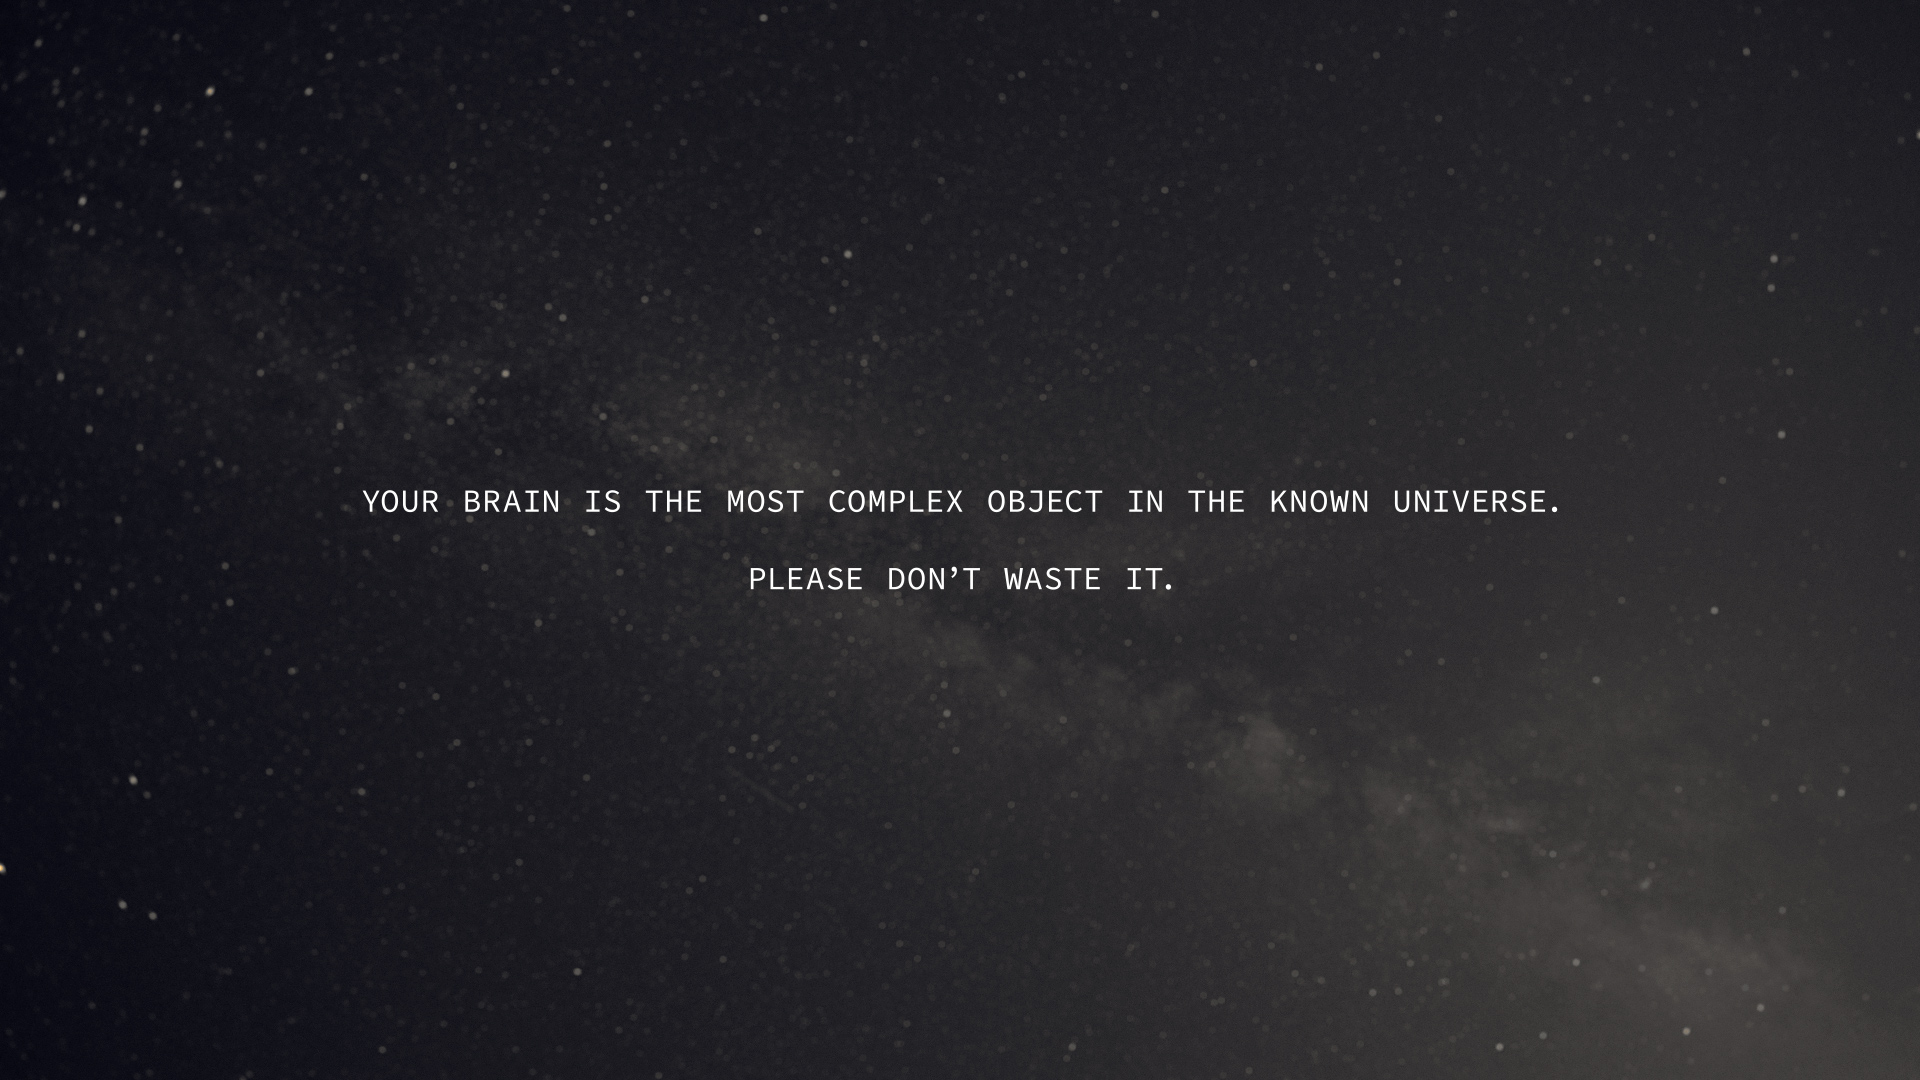 [Image] [OC] Your brain is the most complex object in the universe